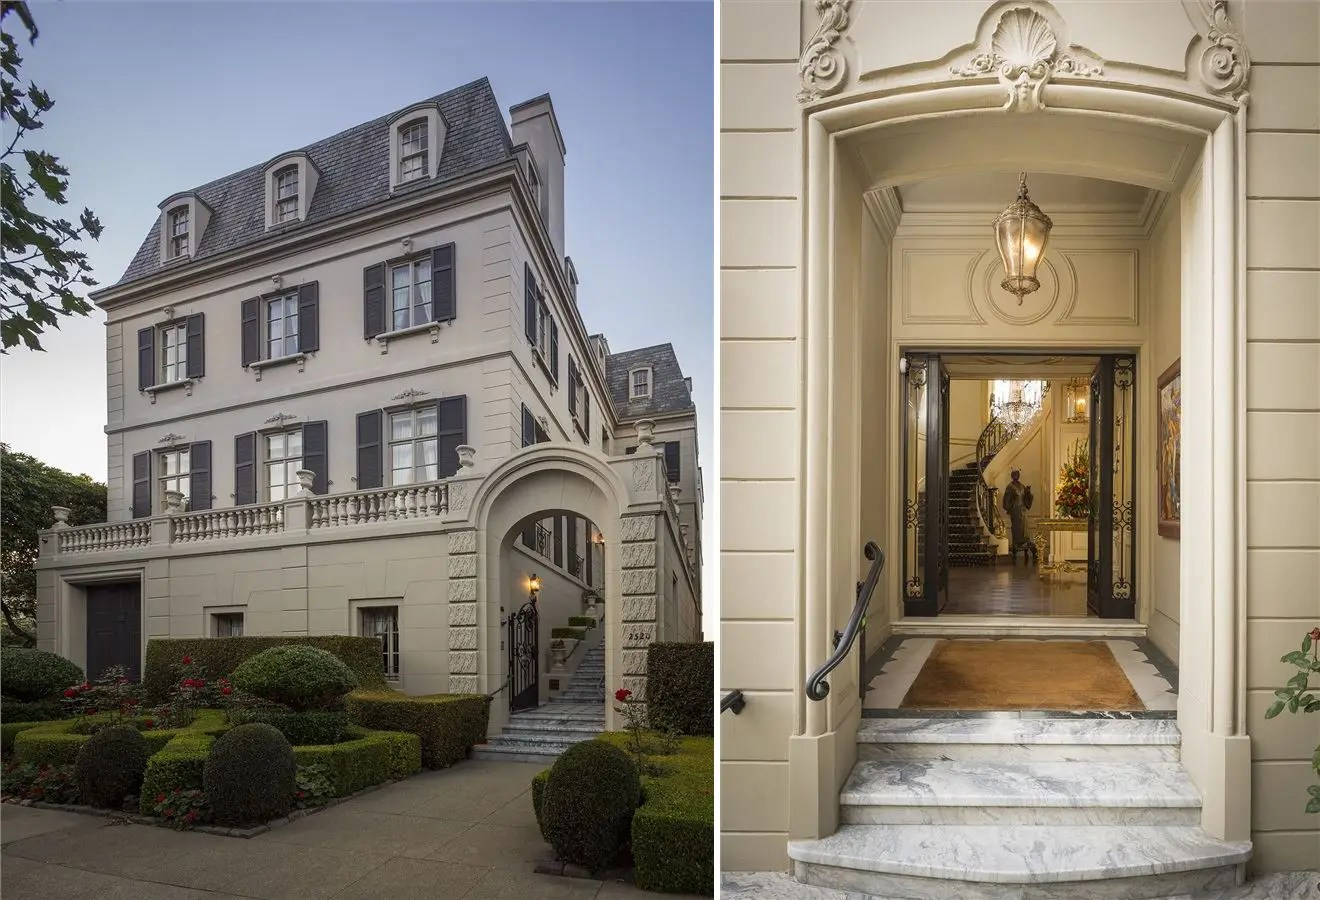 #13 The founder of for-profit education company University of Phoenix put his San Francisco mansion up for sale for $27 million. The nine-bedroom home had 13,000-square-feet with a hidden bar, Art Deco ballroom, and a library. It's still on the market today.